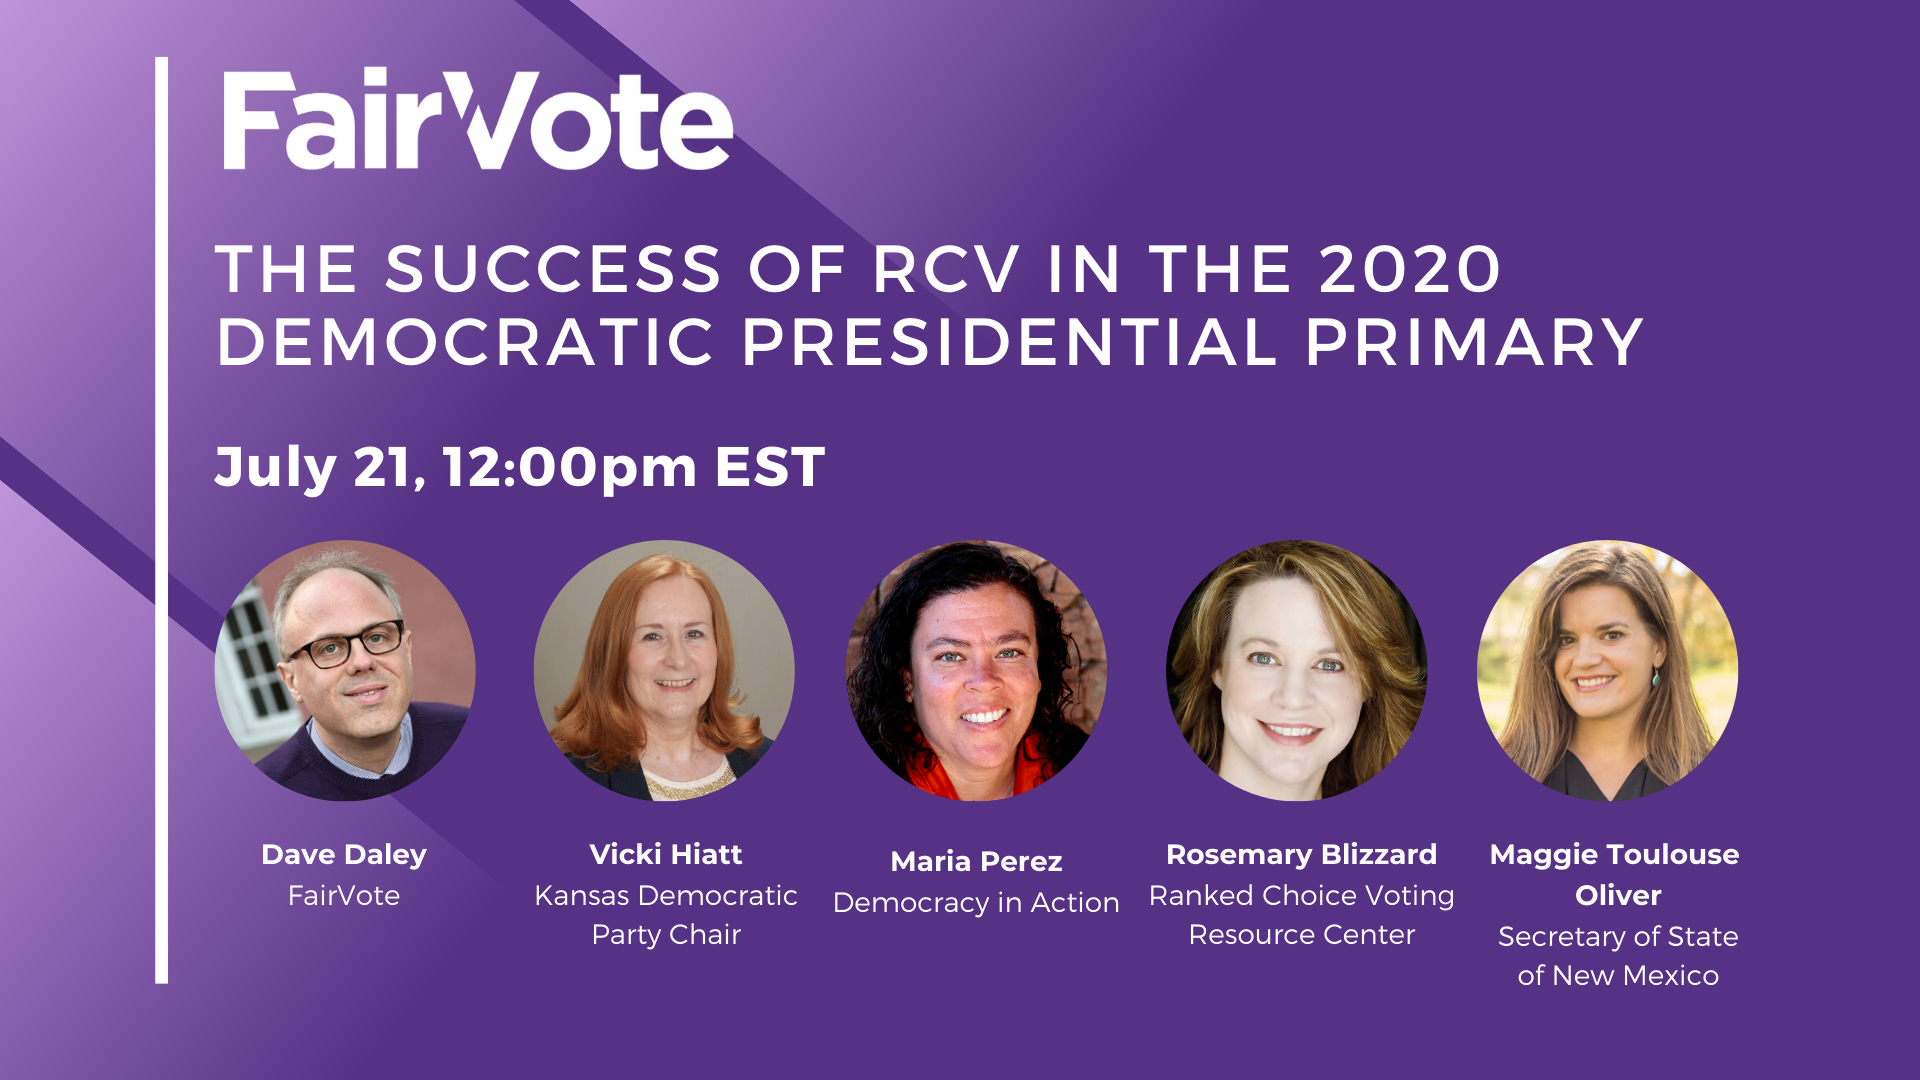 FairVote Webinar Rewind: The Success of RCV in the 2020 Democratic Presidential Primary